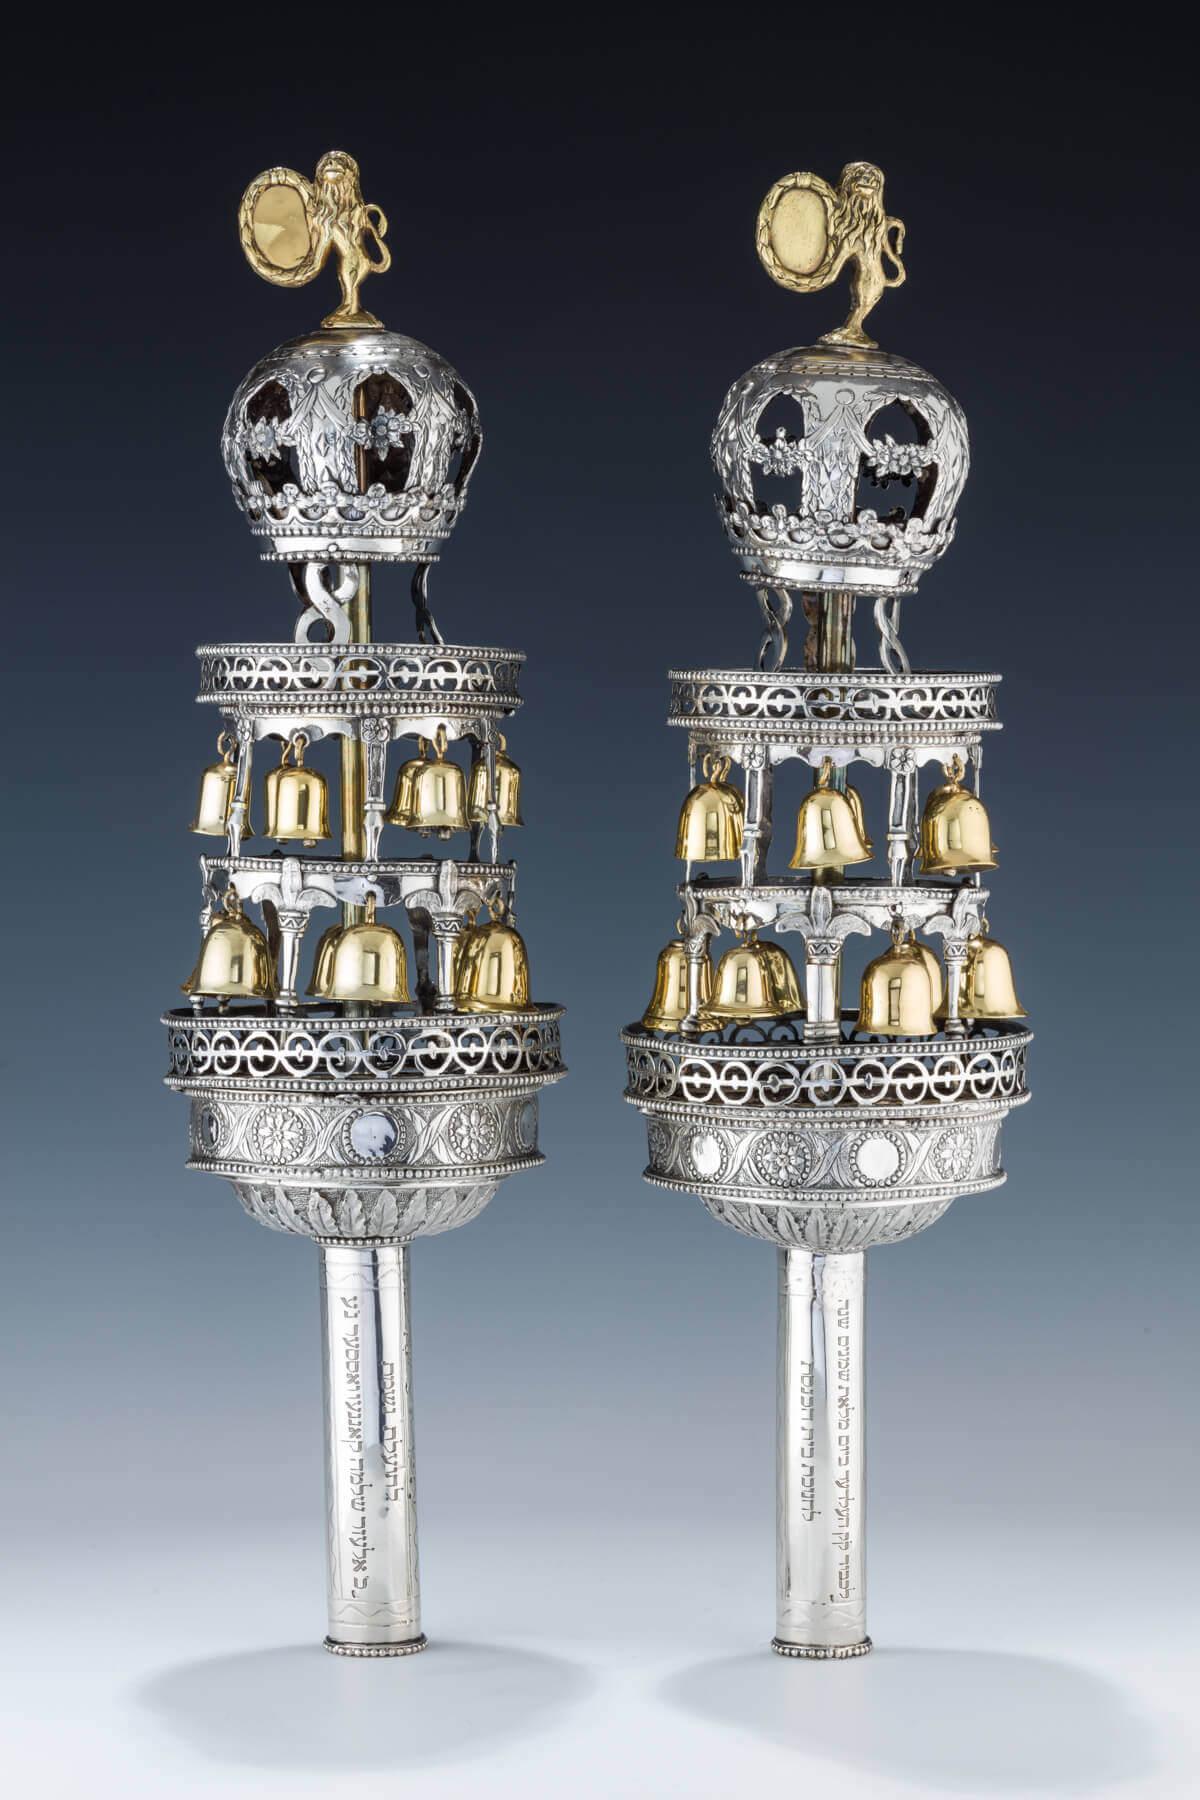 141. AN EXTREMELY RARE PAIR OF SILVER TORAH FINIALS BY CARL BITZEL